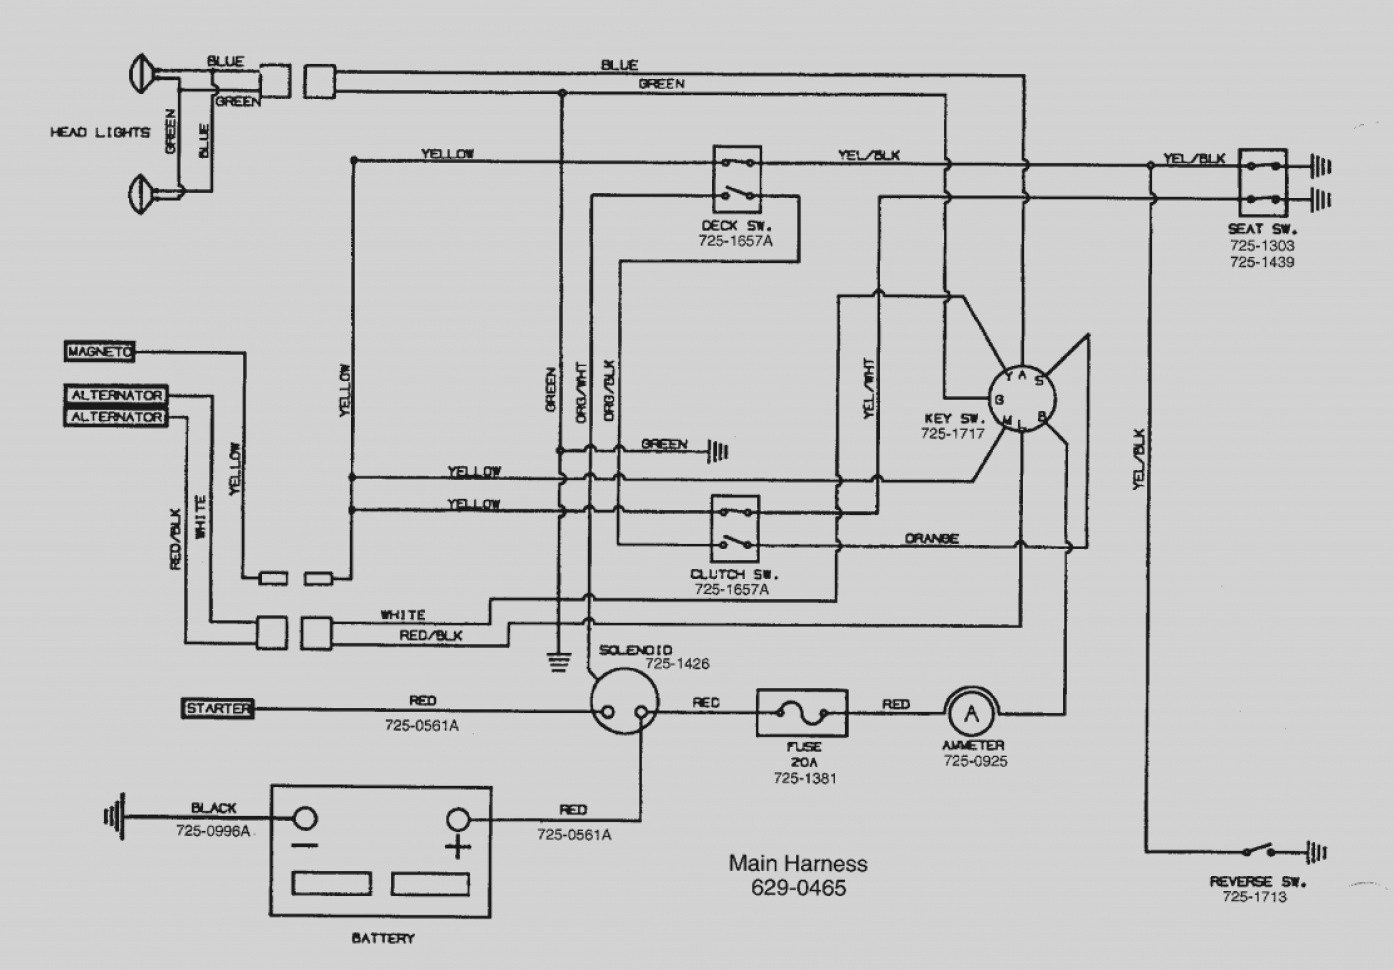 Mtd Spring Diagram Trusted Wiring. Yard Machine Wiring Diagram 31ae644e129 Trusted Diagrams \u2022 John Deere Lt155 Belt Mtd Spring. John Deere. John Deere Lawn Mower Electrical Diagram Solendid At Scoala.co